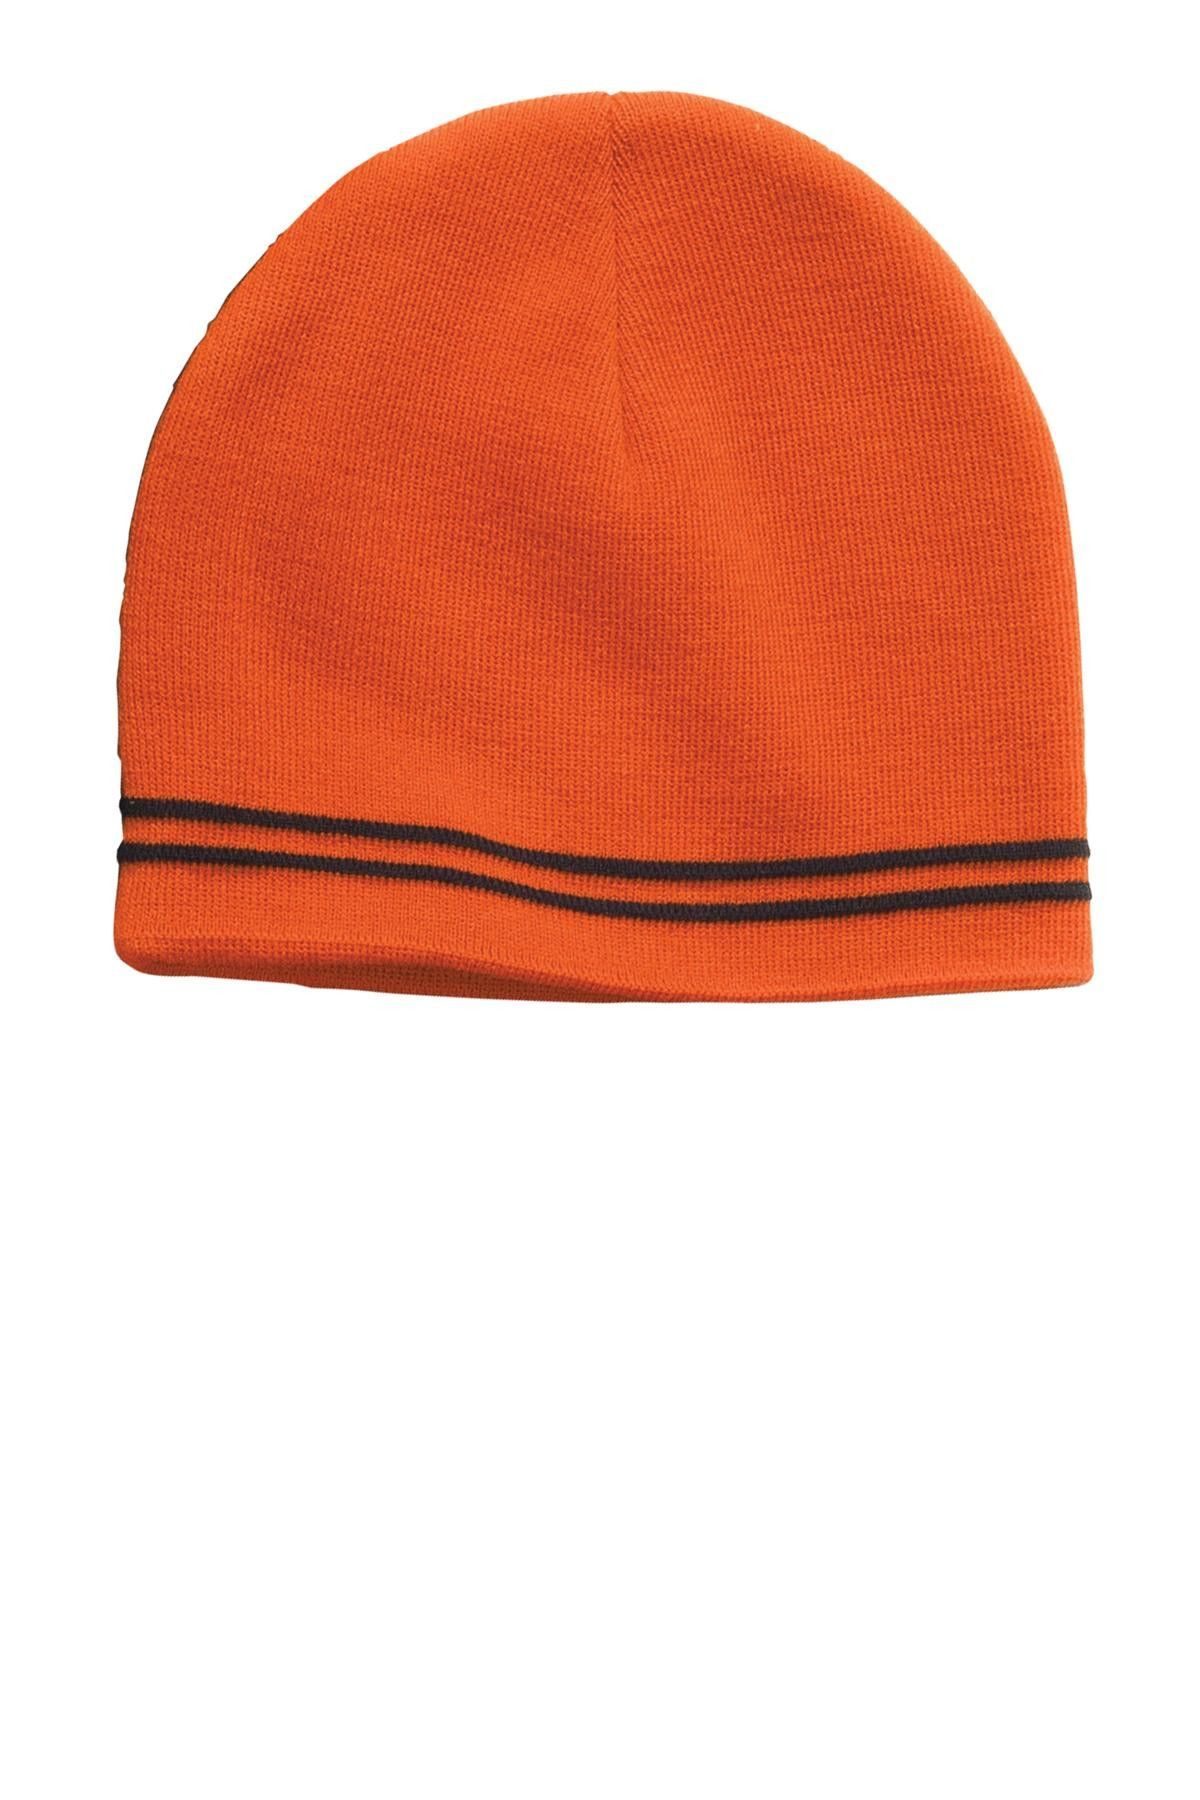 4939d0ae307 Sport-Tek Spectator Beanie STC20 Deep Orange  Black